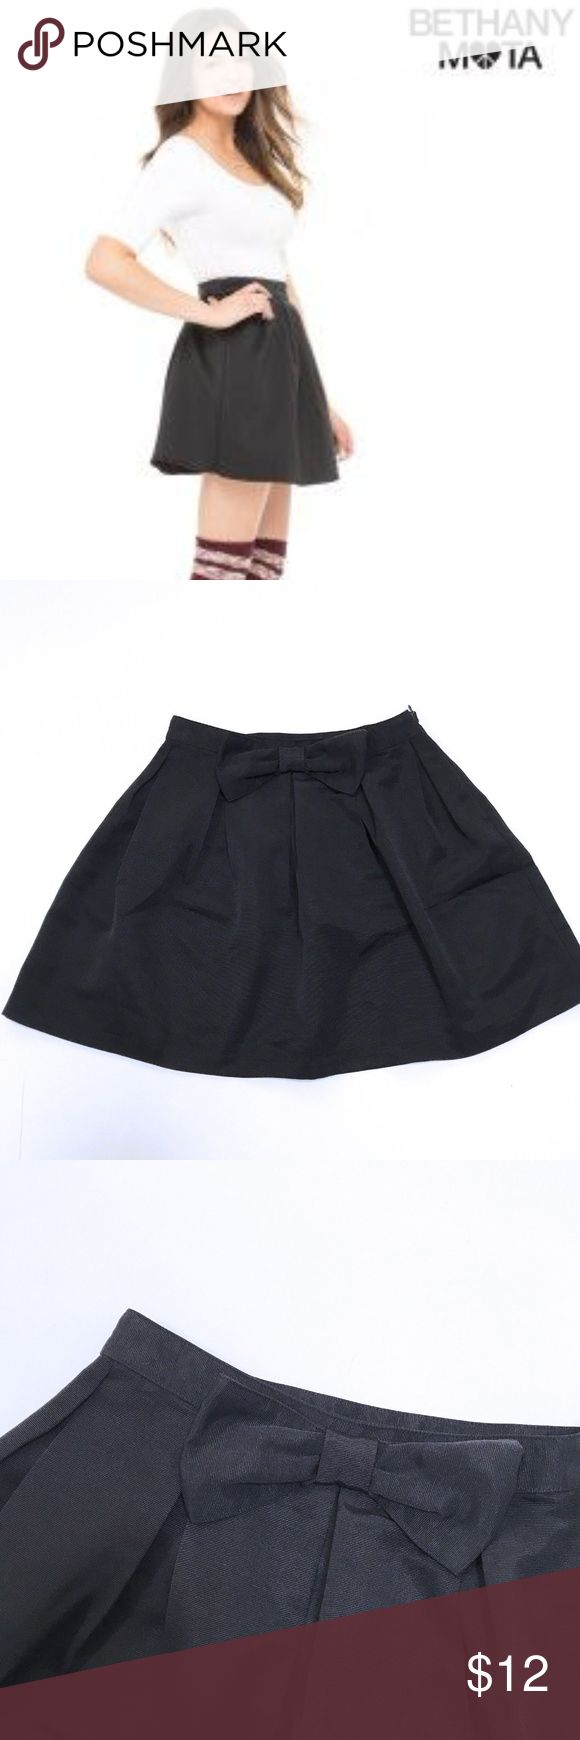 Bethany Mota black bow pleated skirt Bethany Mota skater pleated mini skirt with front bow on waistband. 100% polyester, 17 in. long, roughly 32 1/2 in. waist. Worn once, in excellent condition, like new just to short for me. Aeropostale Skirts Mini